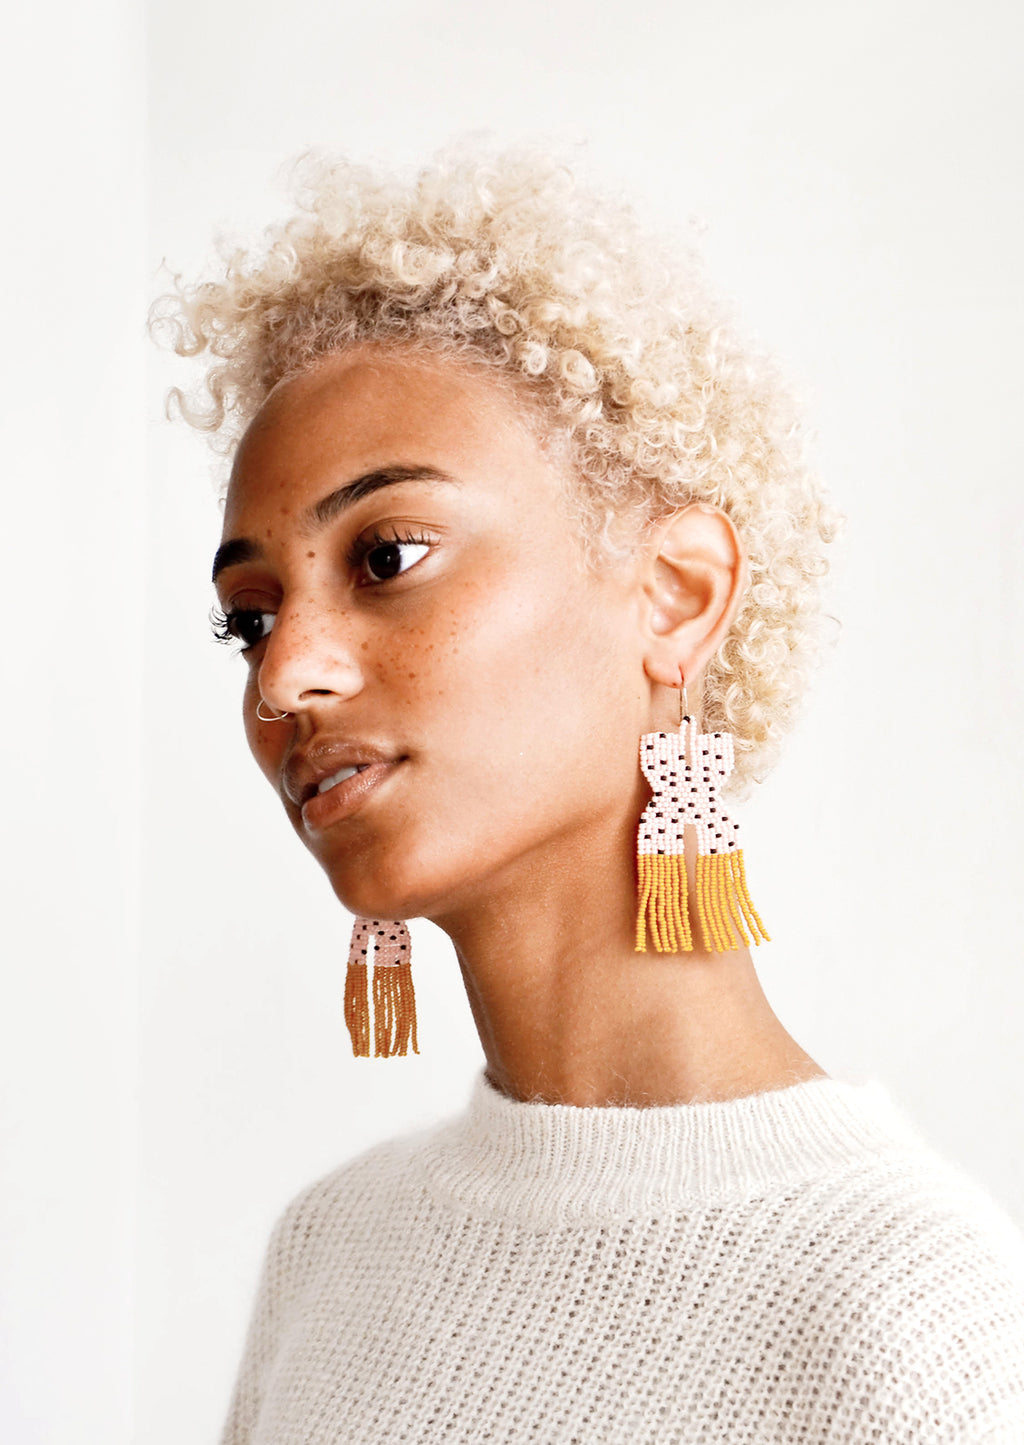 2: Model wears pink and yellow fringe beaded earrings.